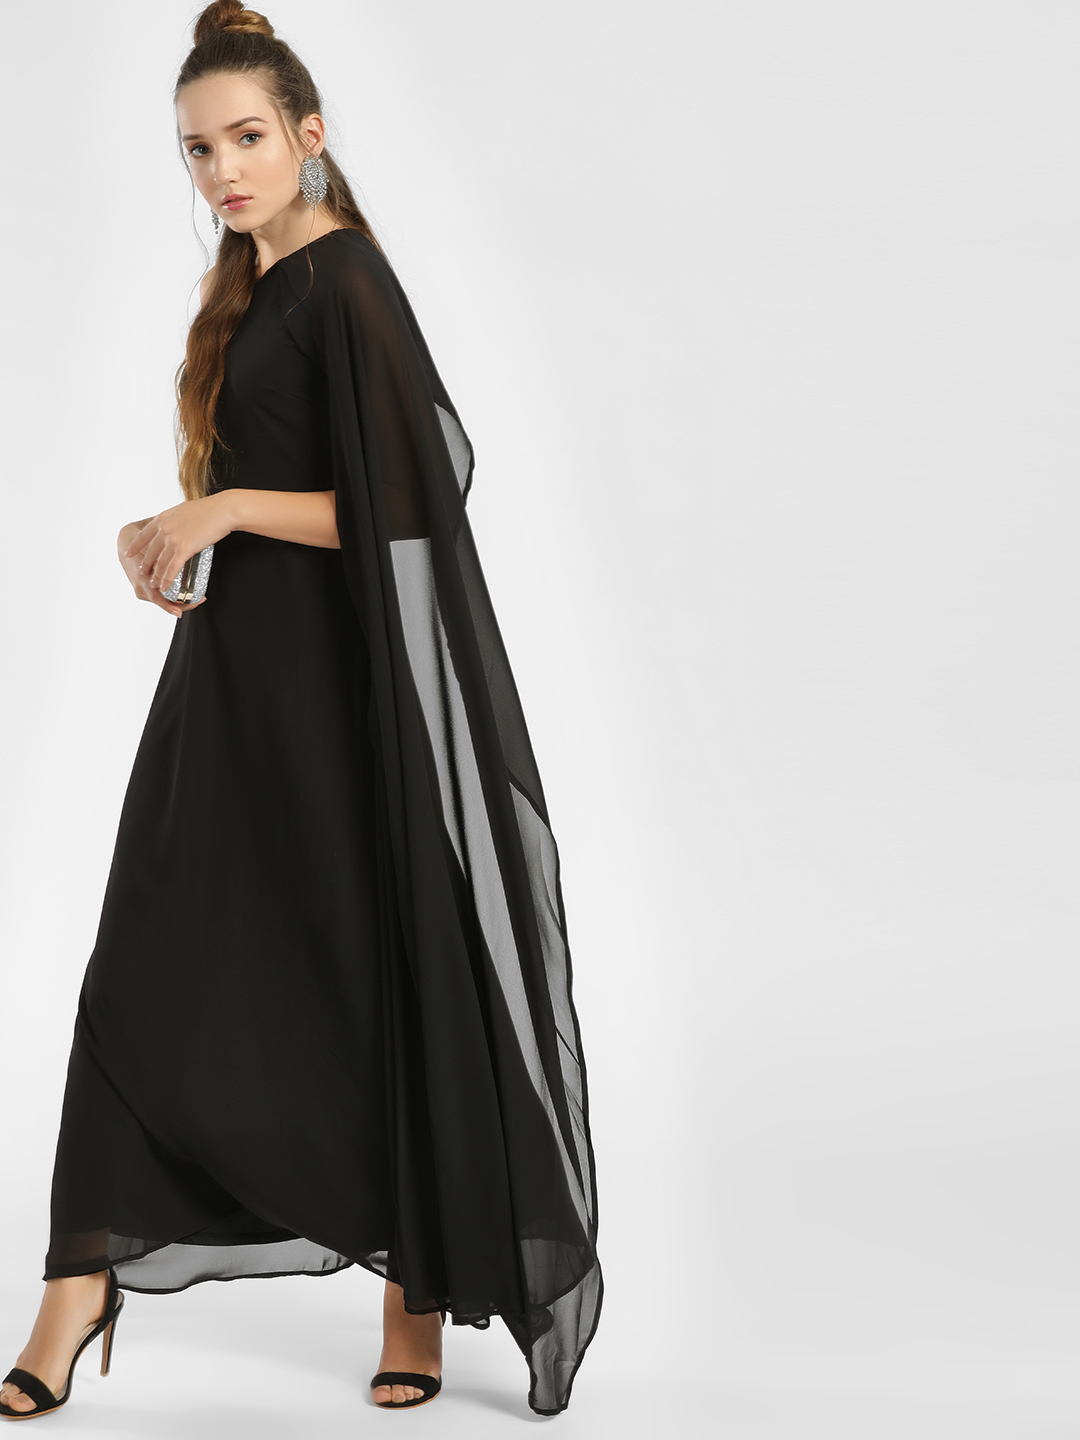 Femella Black One Shoulder Cape Maxi Dress 1